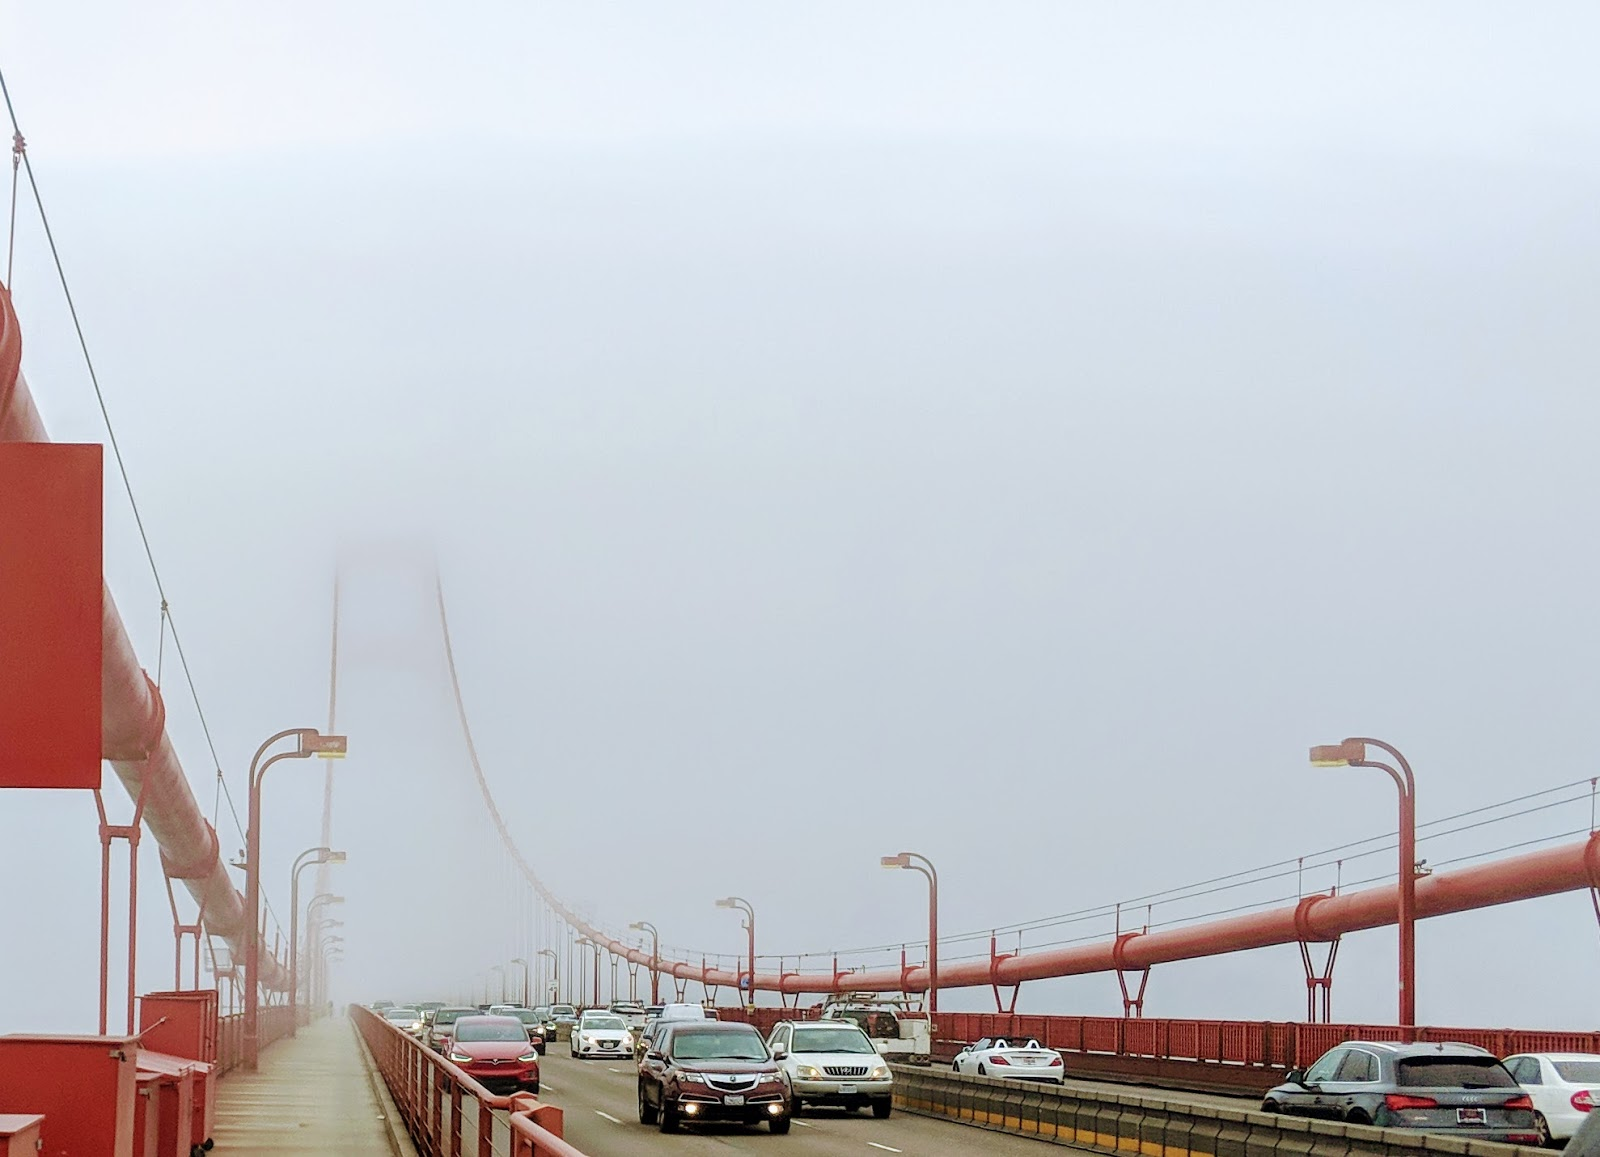 Is it safe to bike commute in foggy weather?